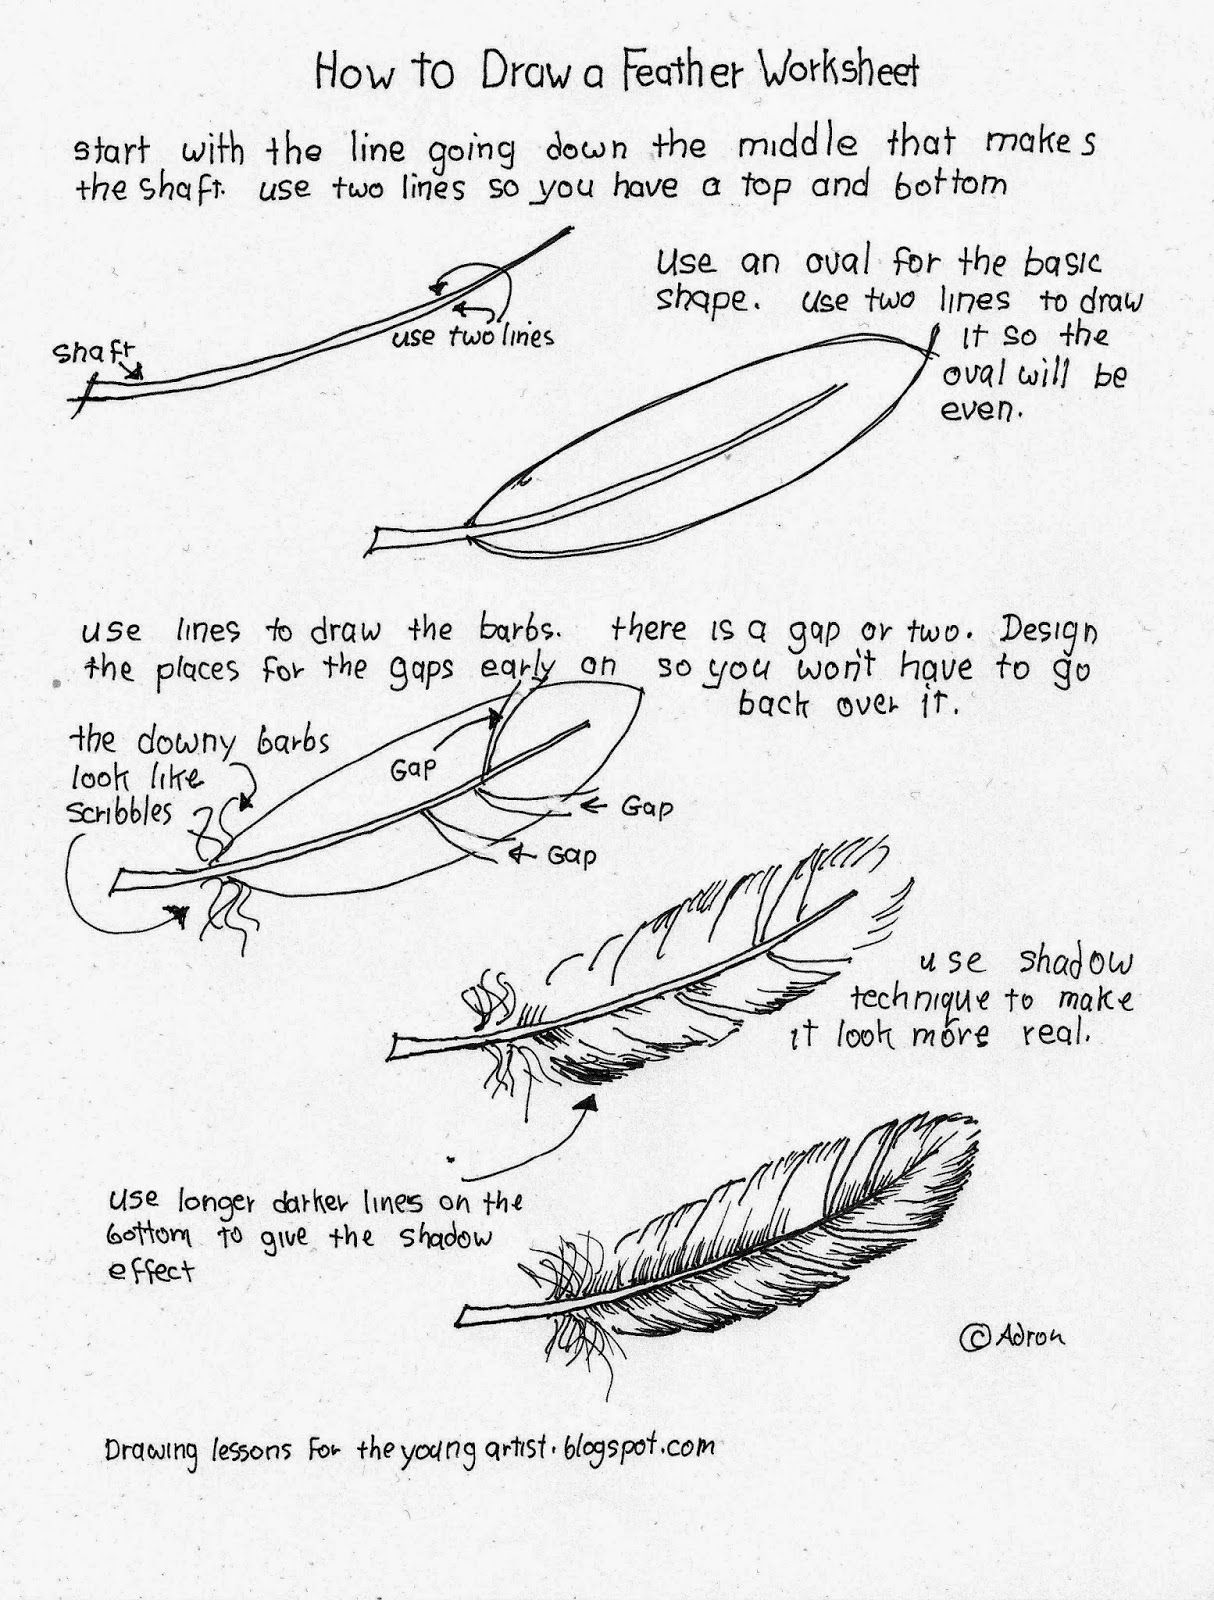 How To Draw A Feather Worksheet See More At My Blog Drawinglessonsfortheyoungartist